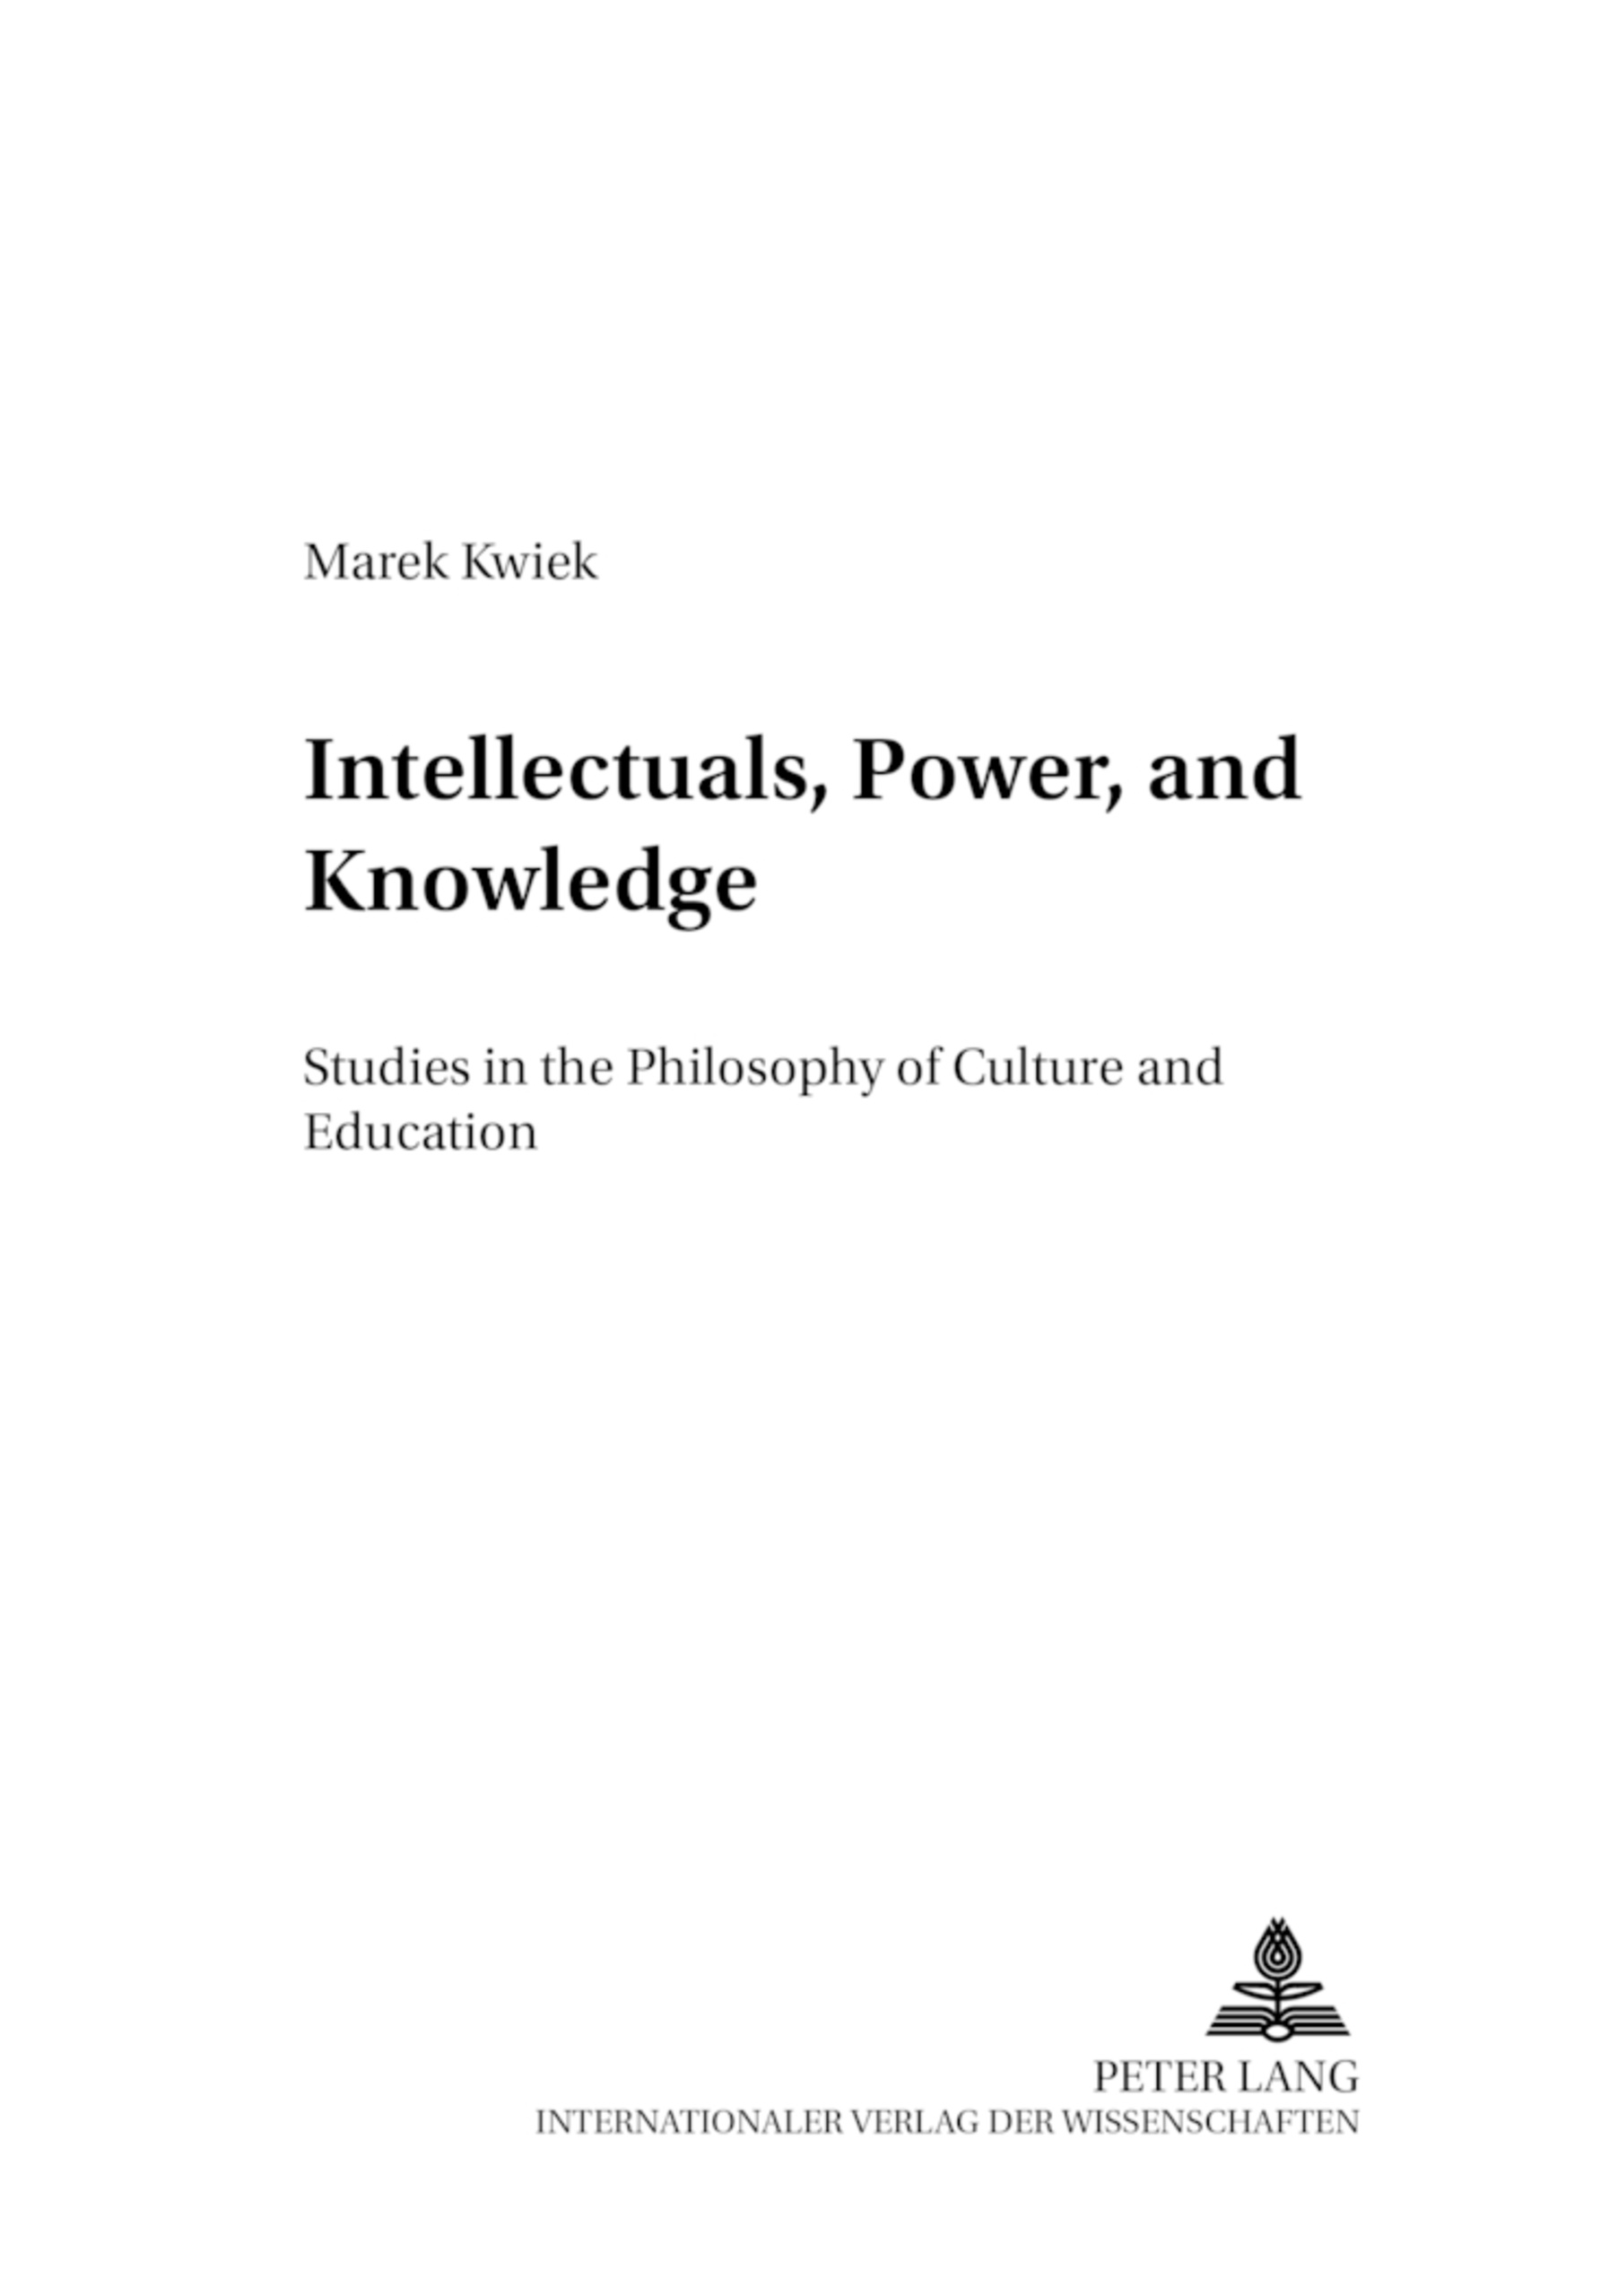 Title: Intellectuals, Power, and Knowledge